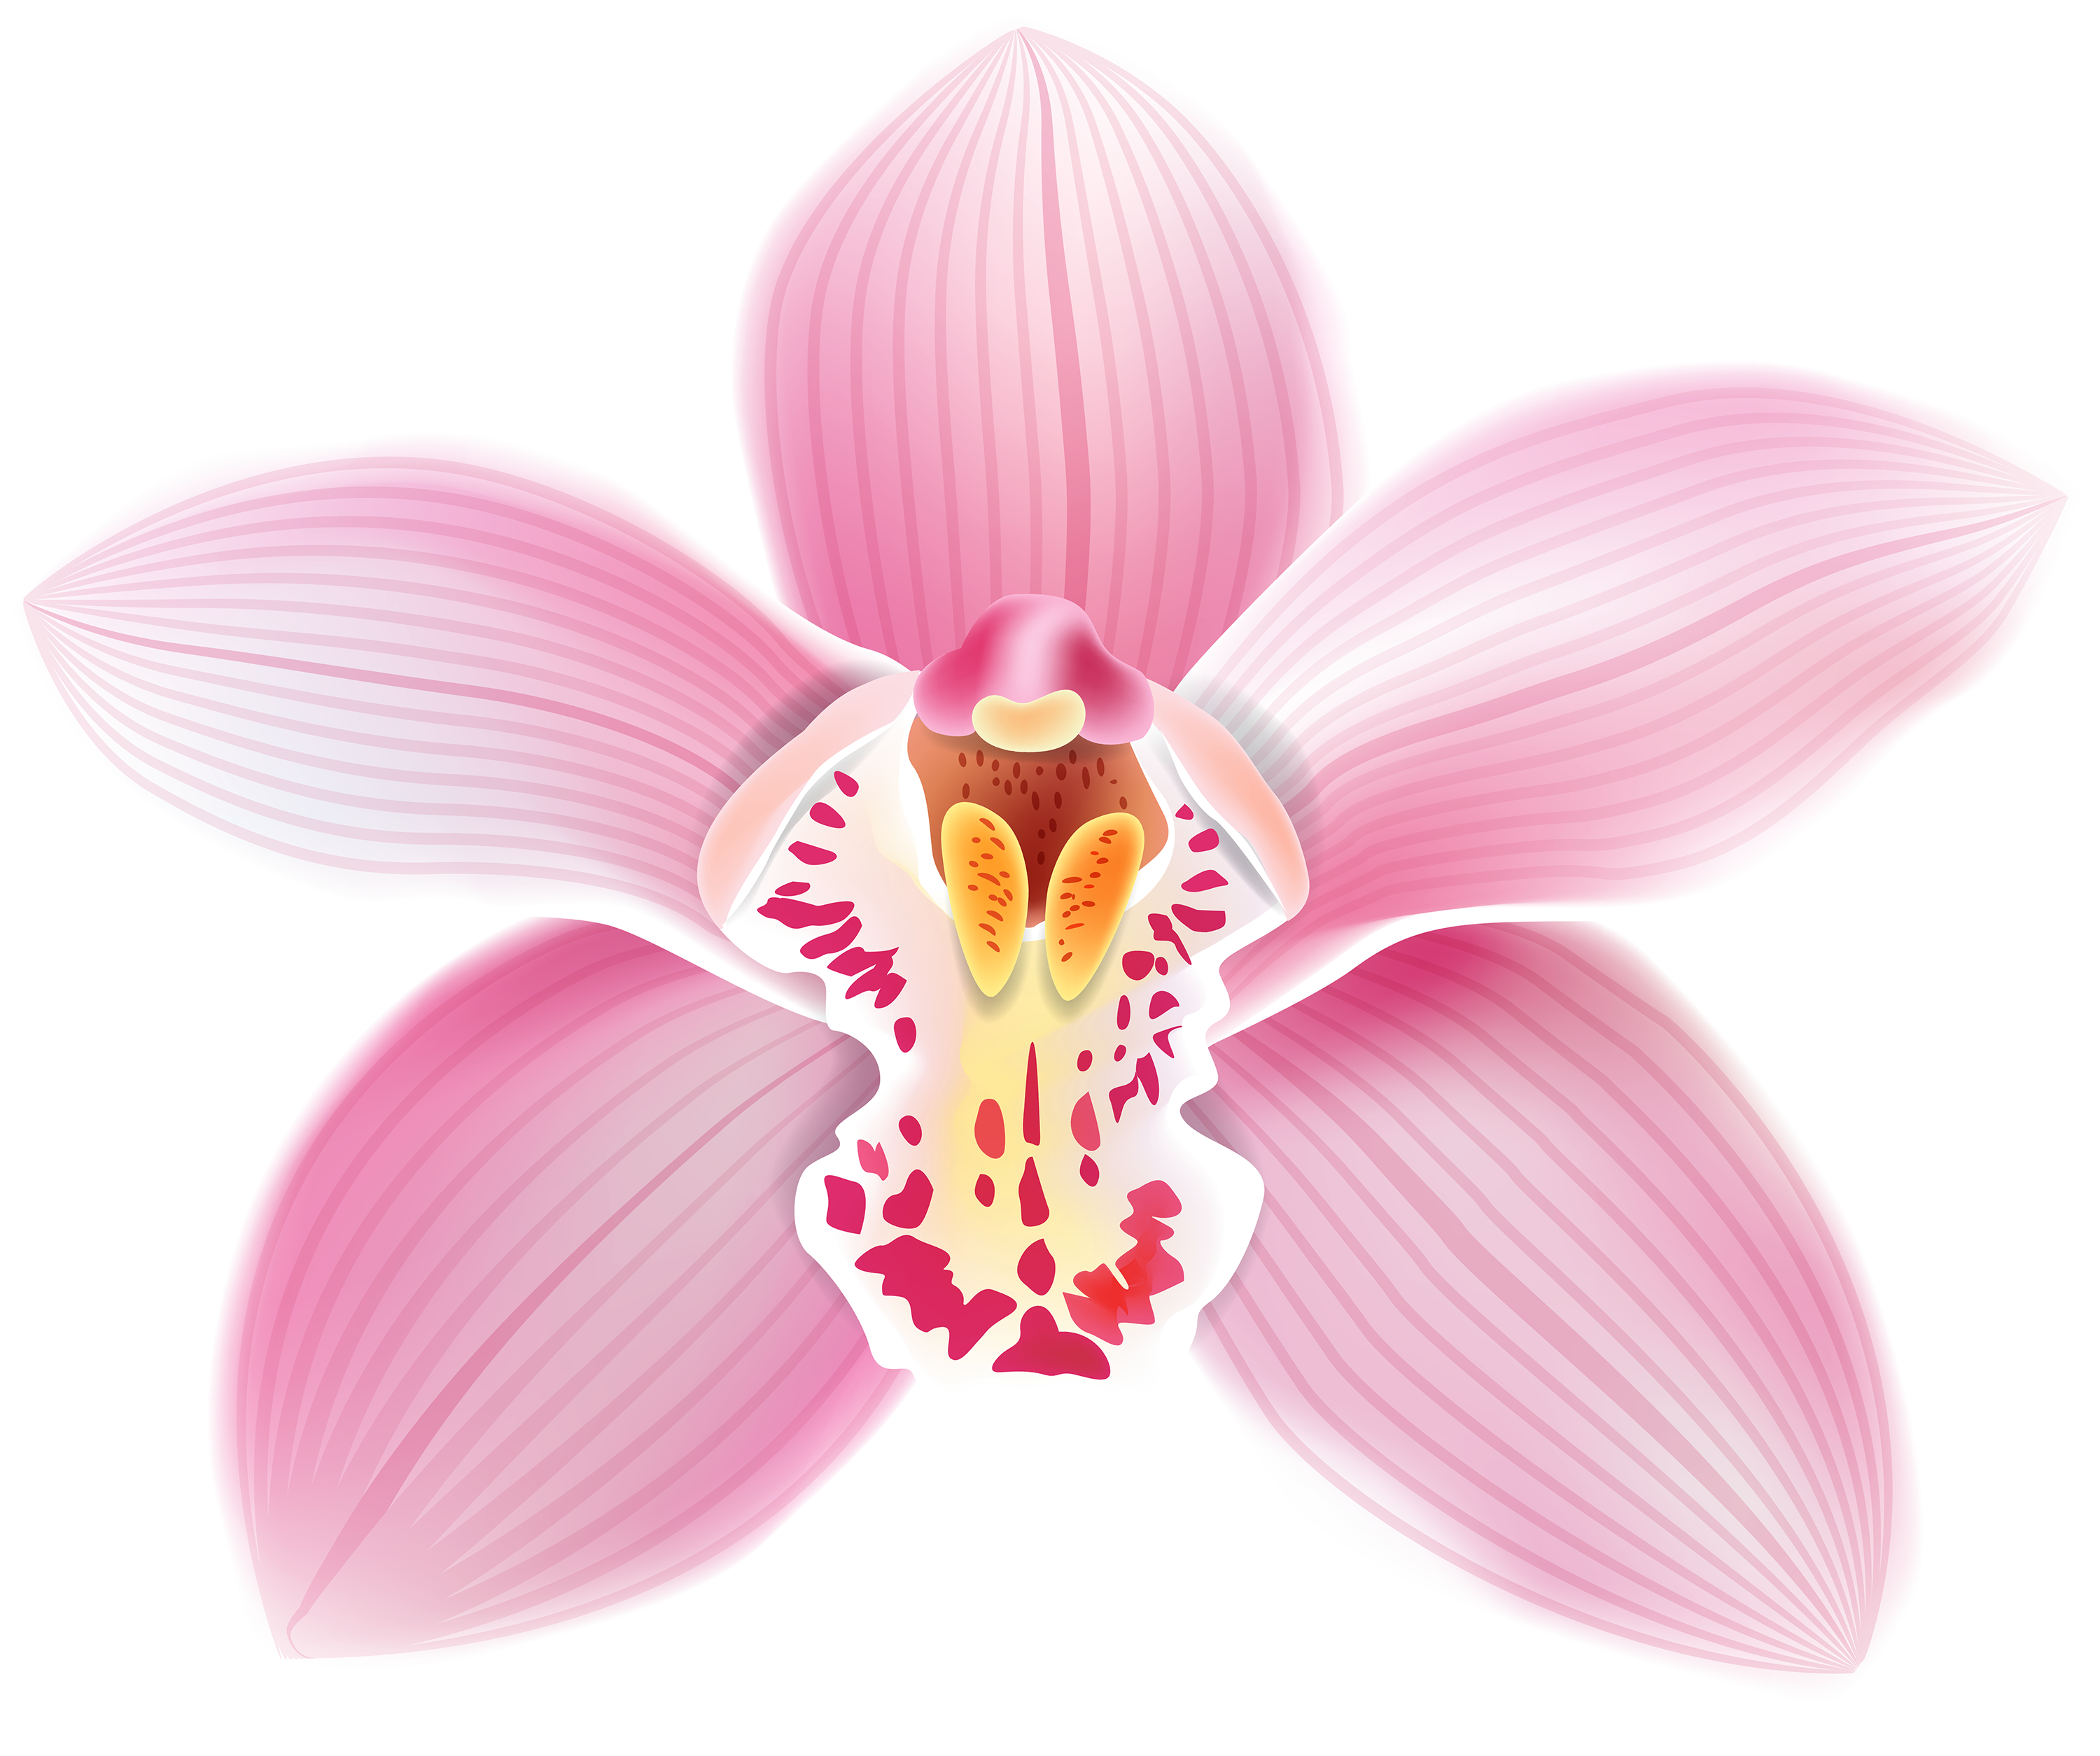 Orchid clipart Orchid Cliparts Cliparts Cliparts Orchid